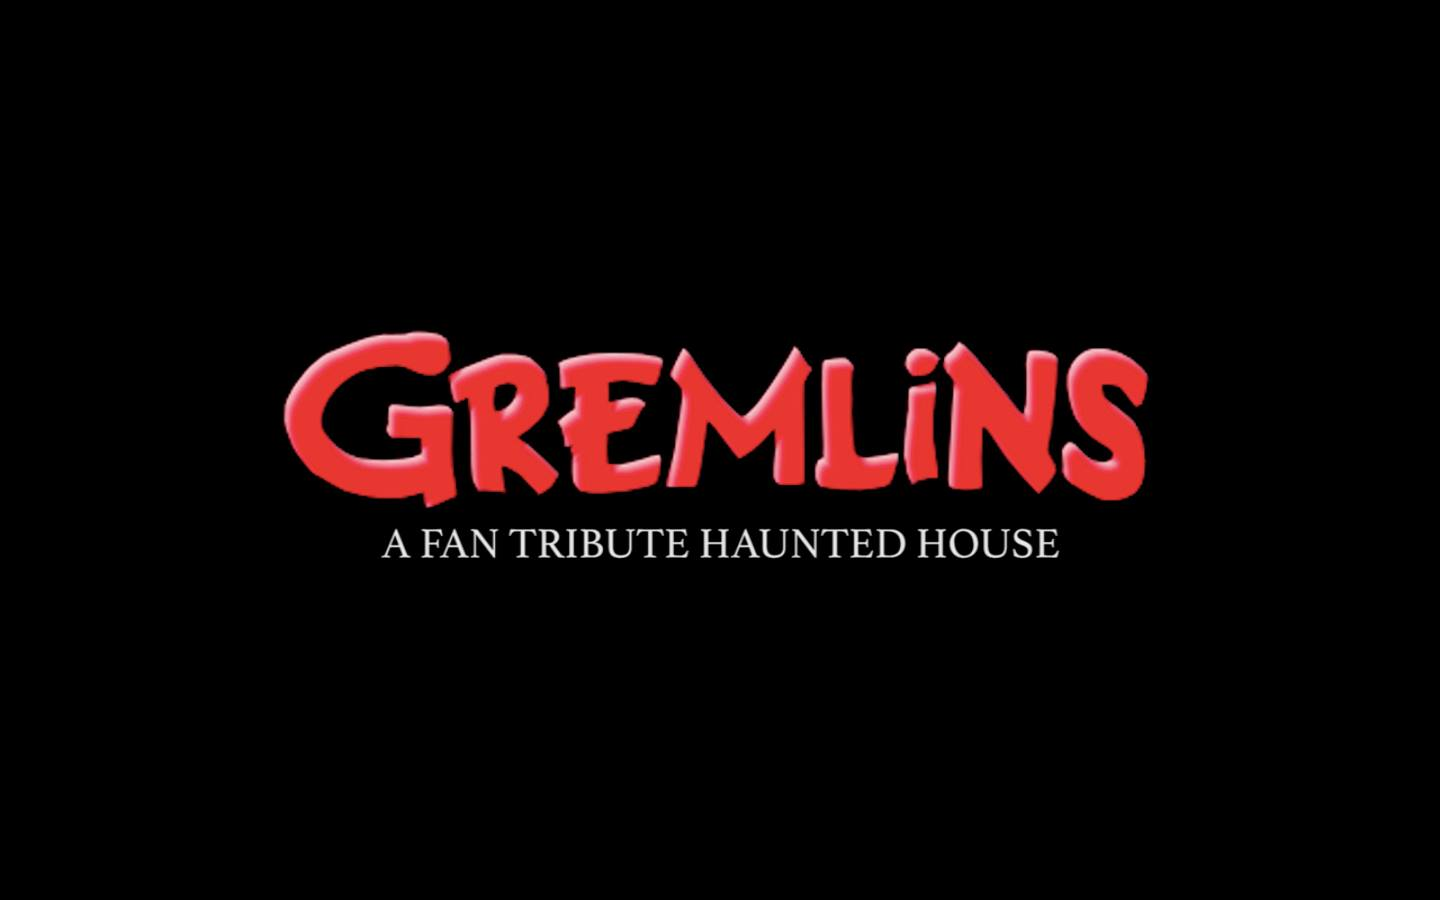 Gremlins Fan Tribute Haunted House Experience